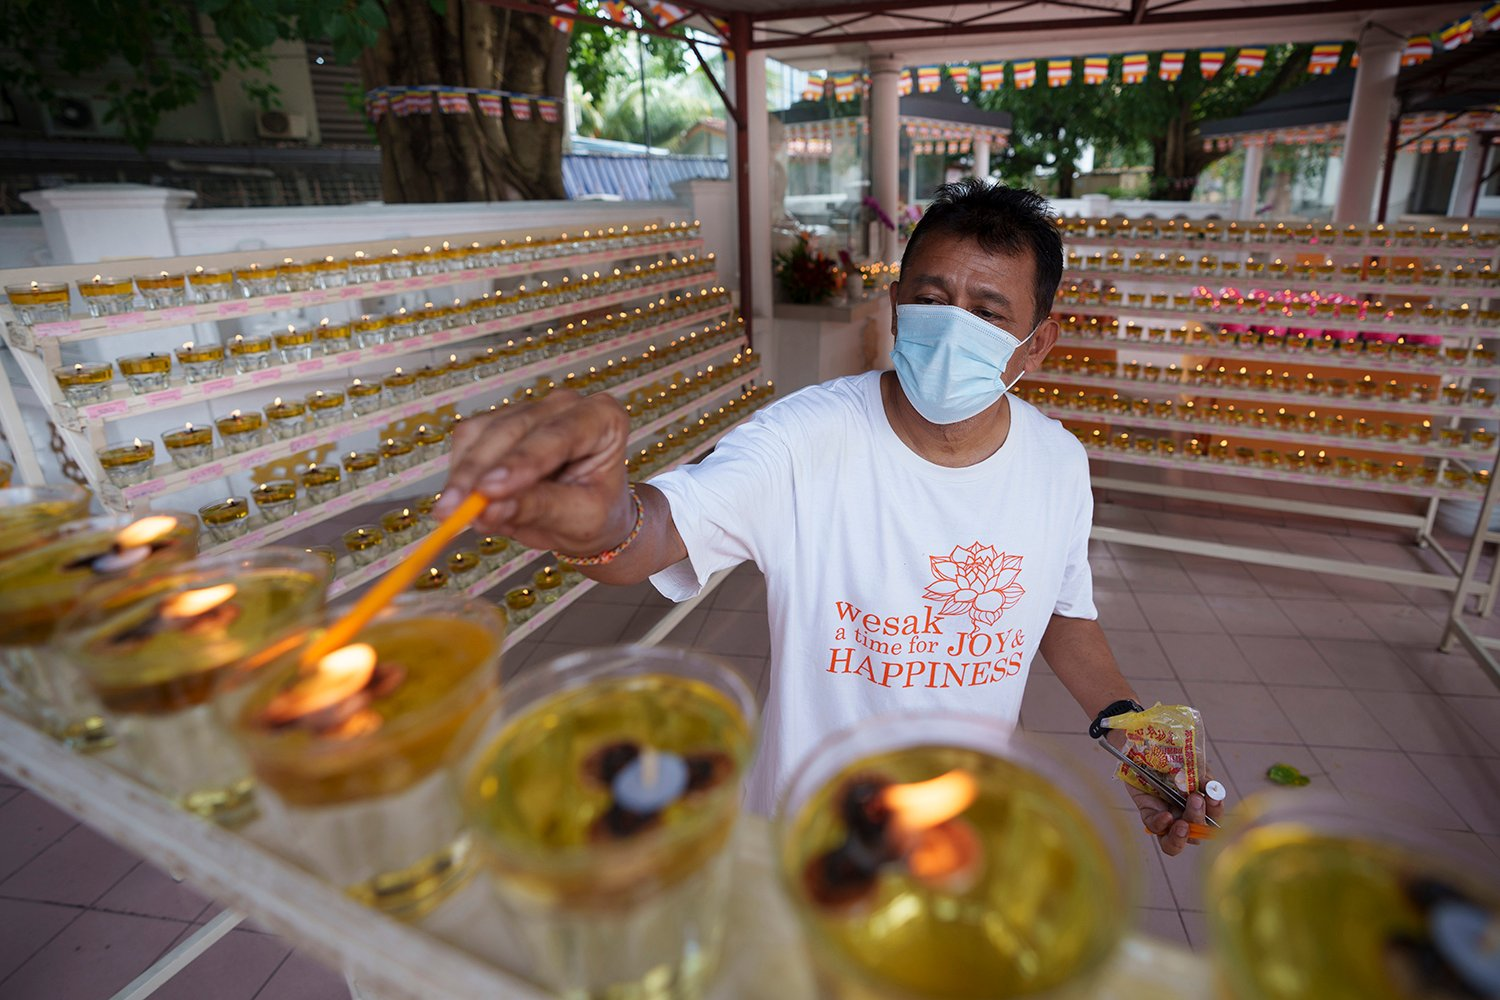 A man wearing a face mask lights up a candle from oil lamp before offering prayers during Wesak Day at a temple in Kuala Lumpur, Malaysia, Wednesday, May 26, 2021. Malaysia's latest coronavirus surge has been taking a turn for the worse as surging numbers and deaths have caused alarm among health officials, while cemeteries in the capital are dealing with an increasing number of deaths. (AP Photo/Vincent Thian)